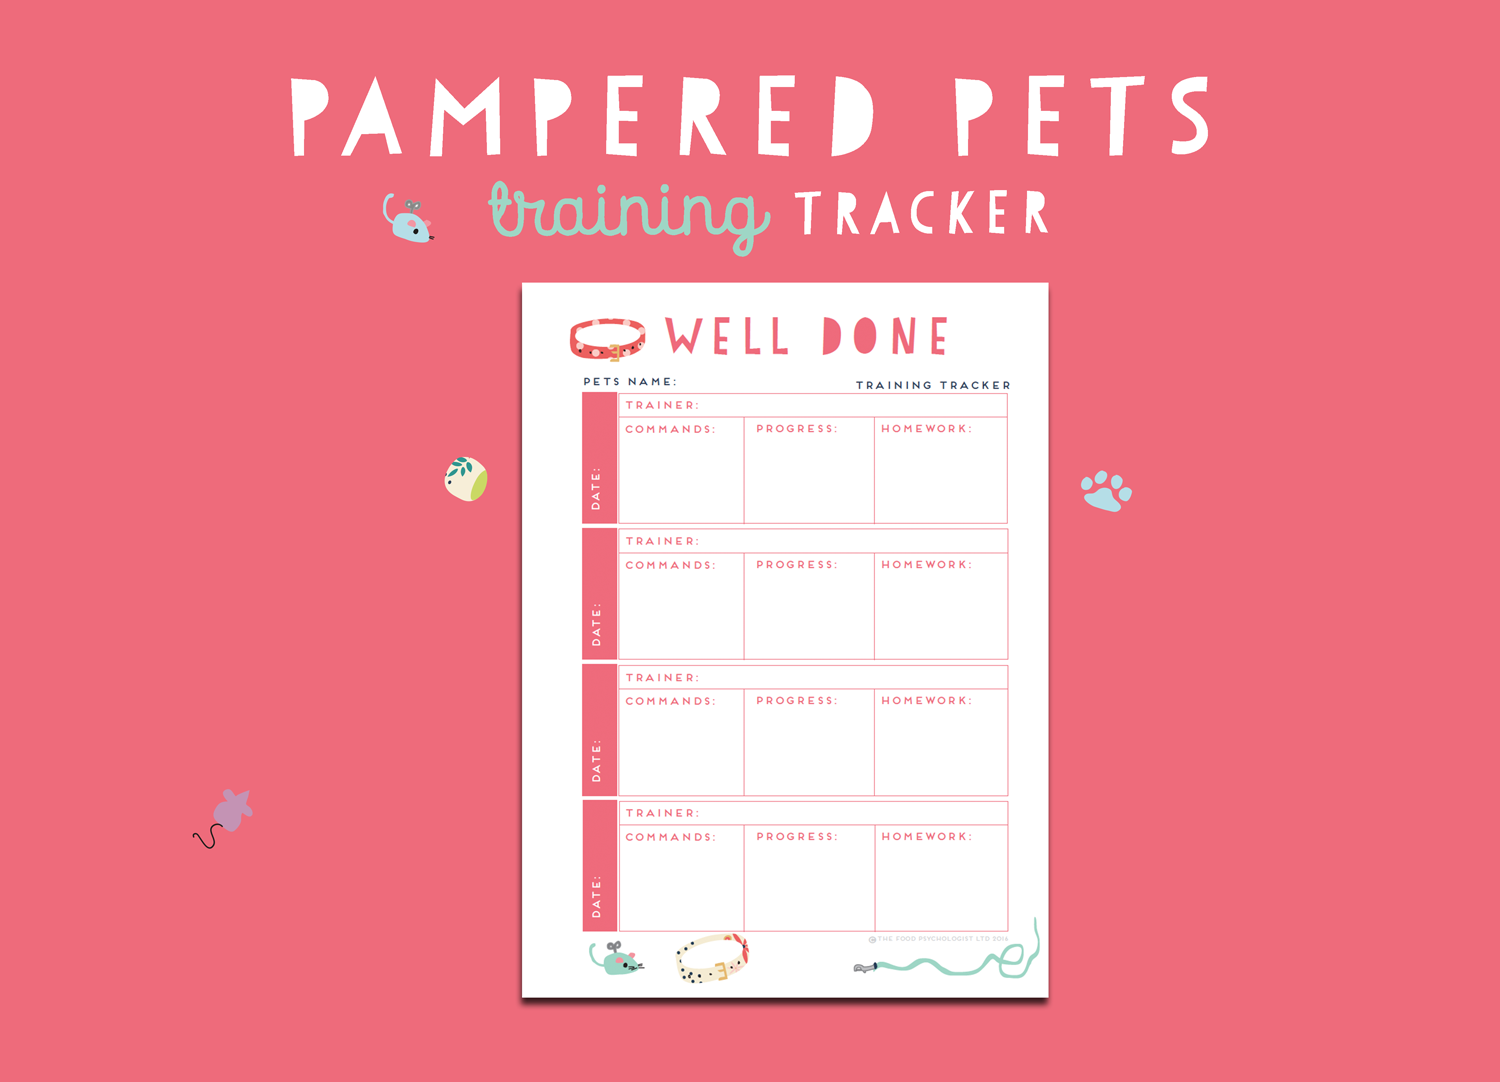 Pampered Pets Training Tracker